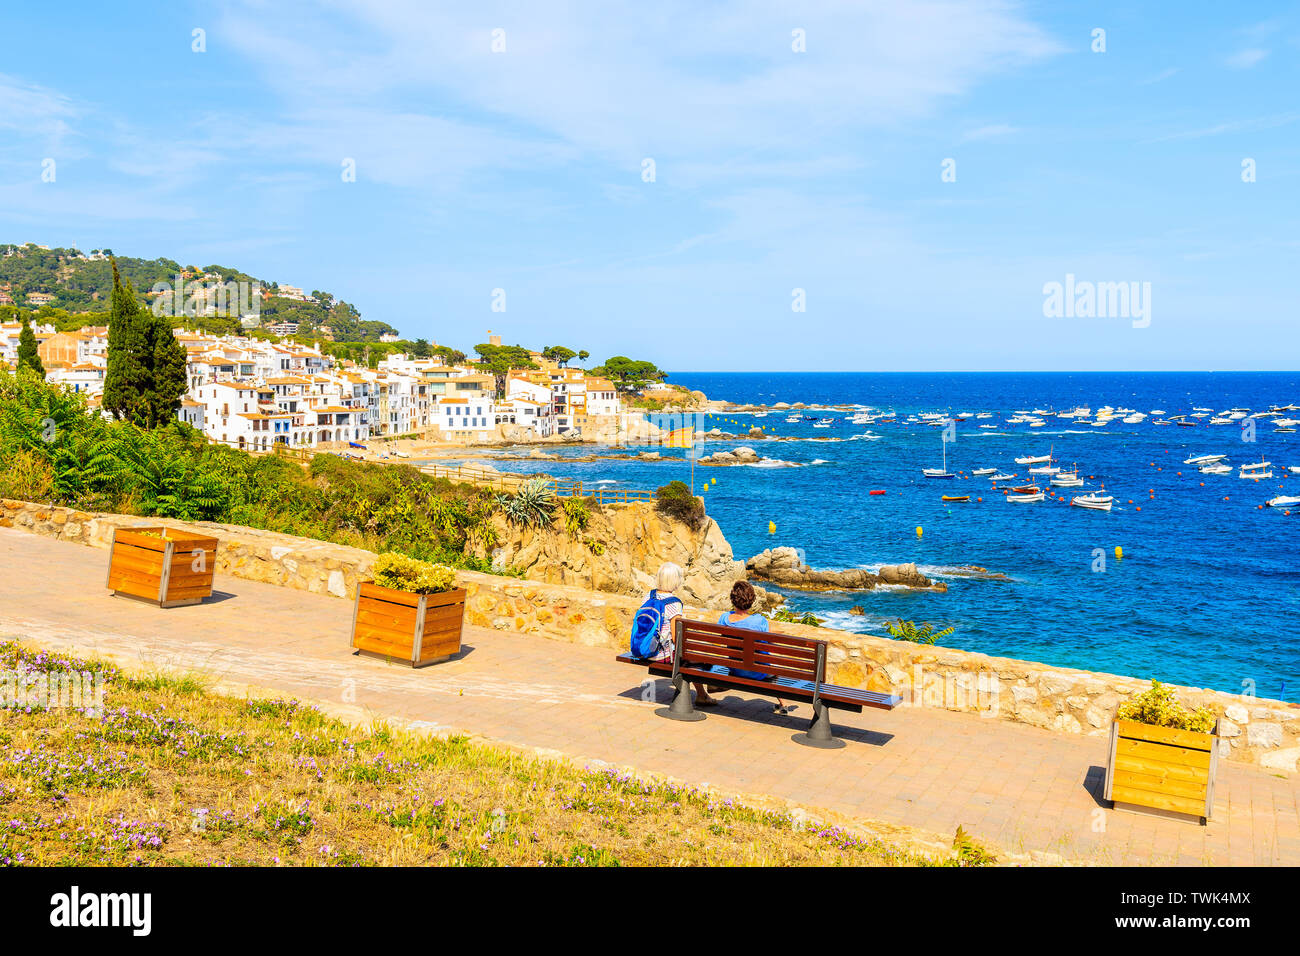 Couple of tourists sitting on coastal promenade in Calella de Palafrugell, scenic fishing village with small castle and sandy beach with clear blue wa Stock Photo